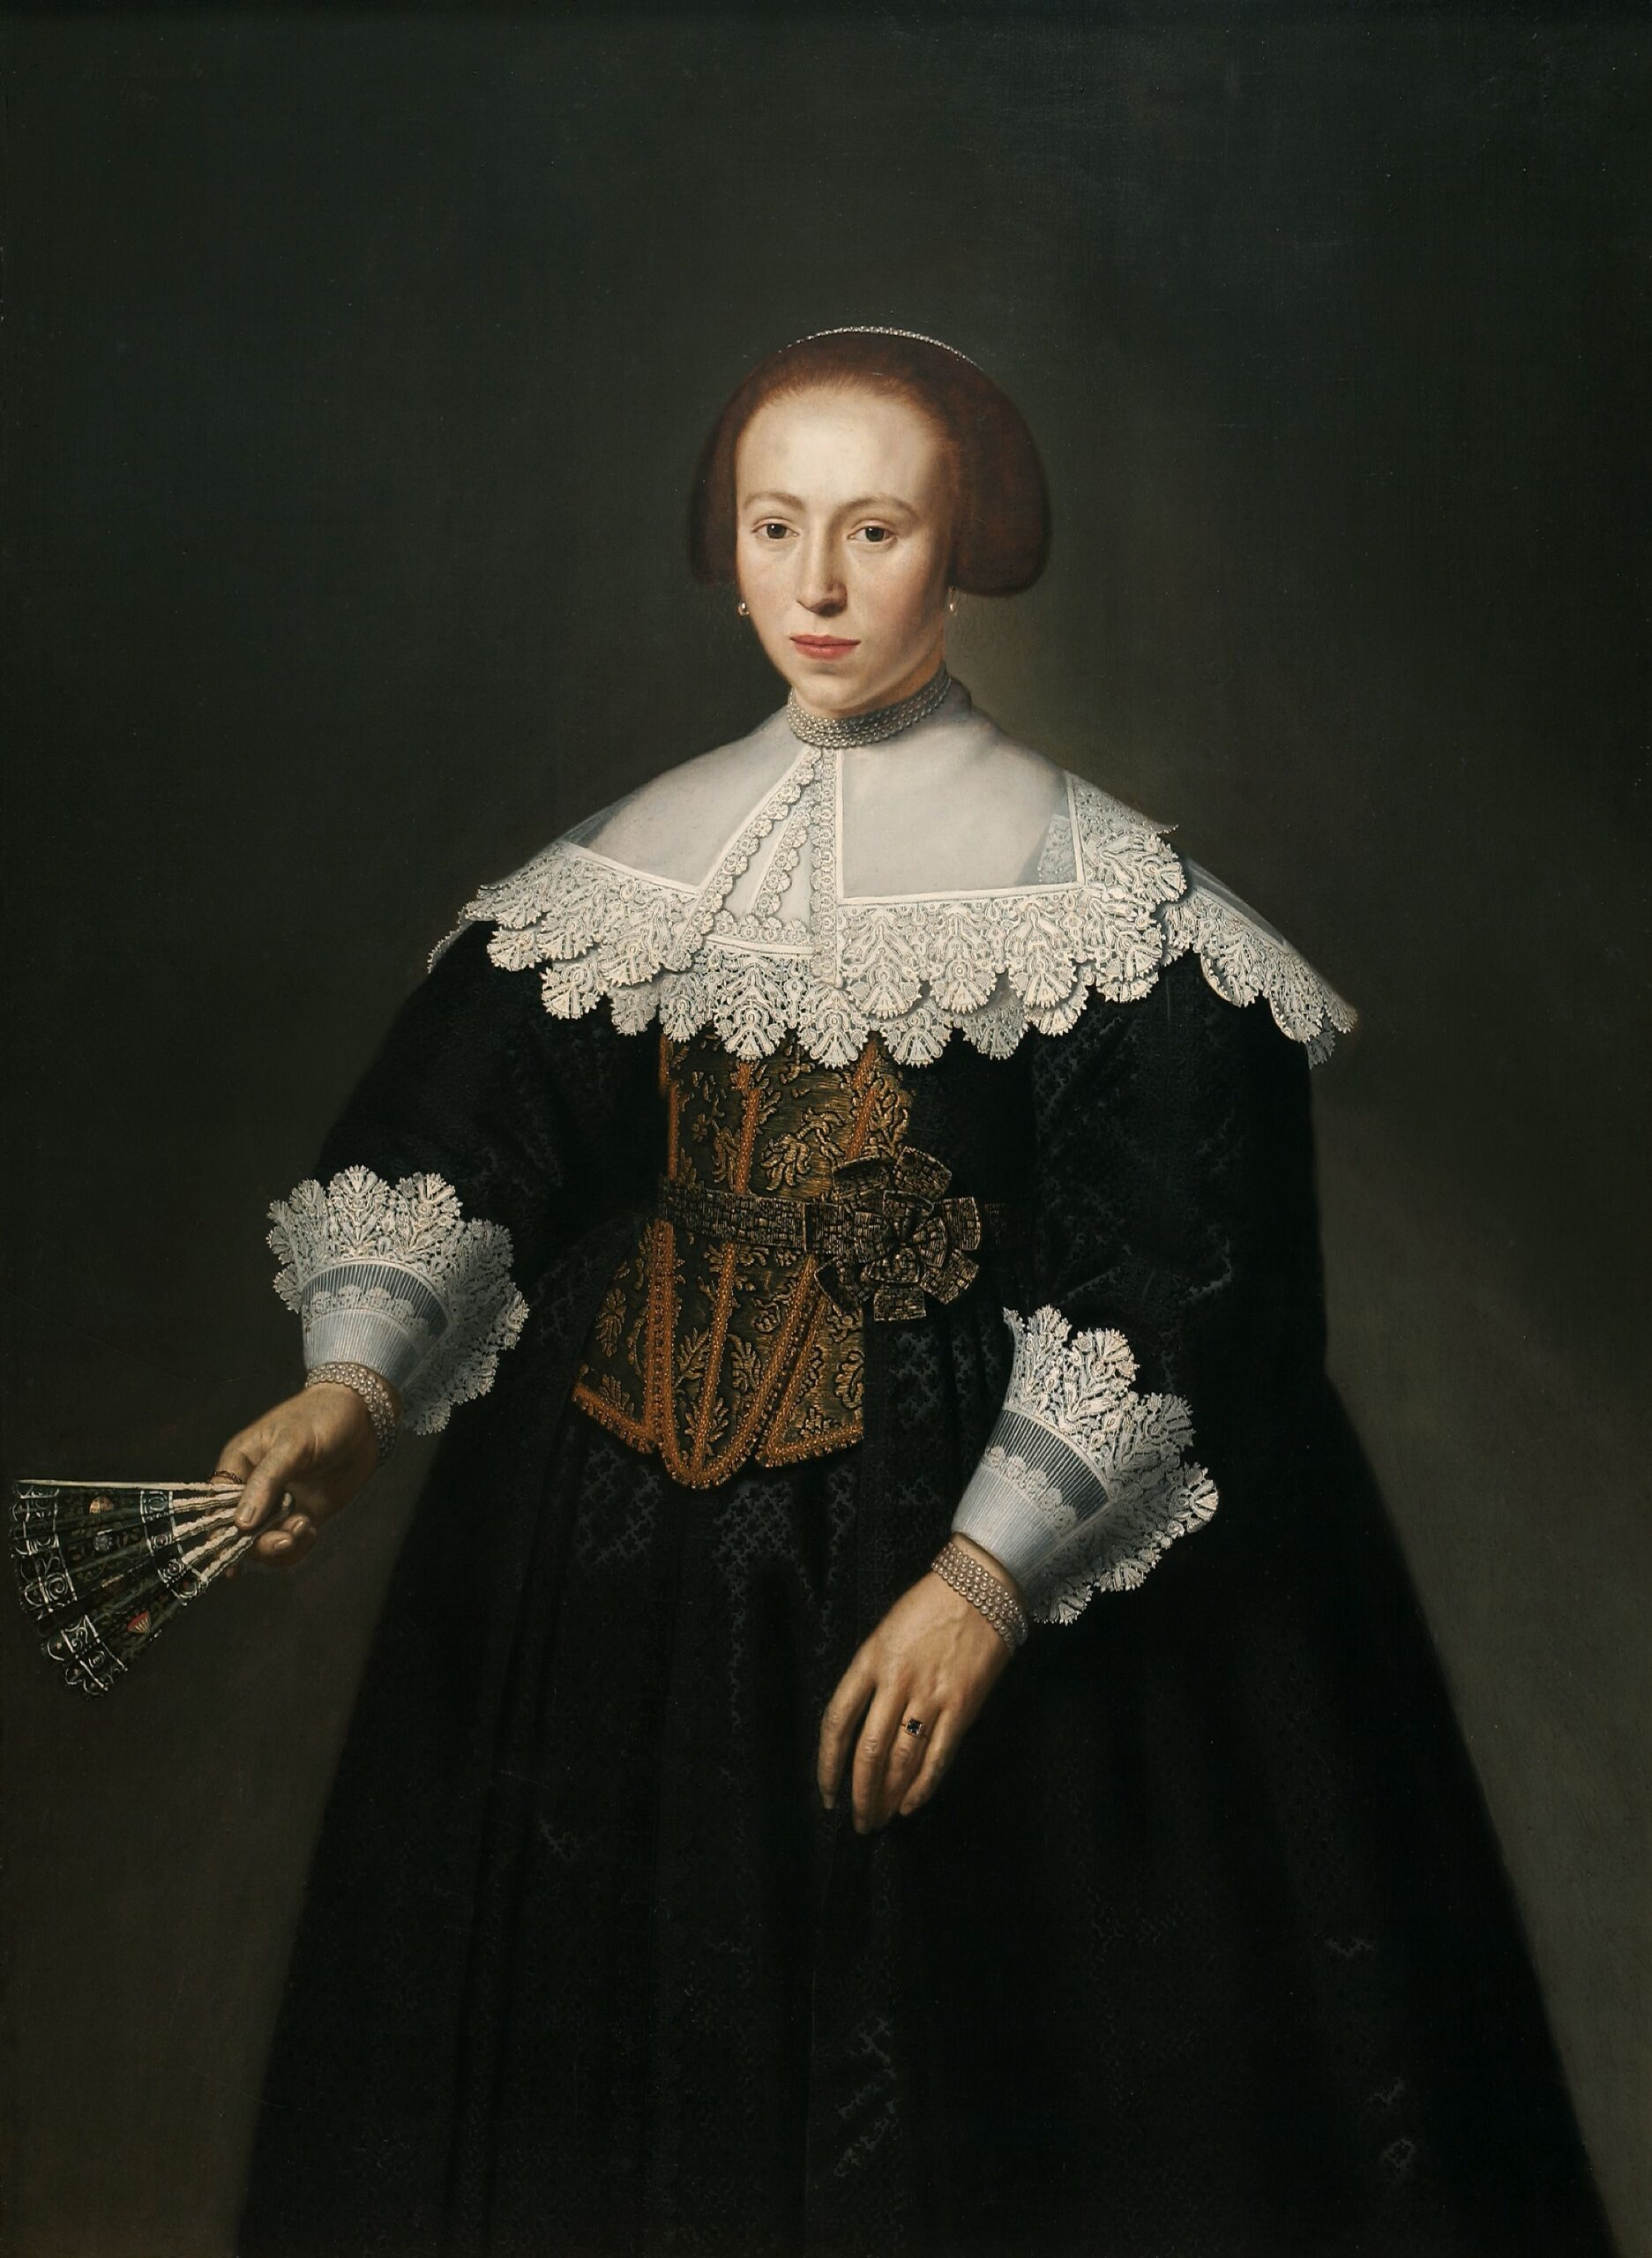 Dirck Santvoort (1609-1680), Portrait of a lady, 1637 Auckland Art Gallery Toi o T ̄amaki, Auckland (gift of P.A.N. Nathan, 1963)